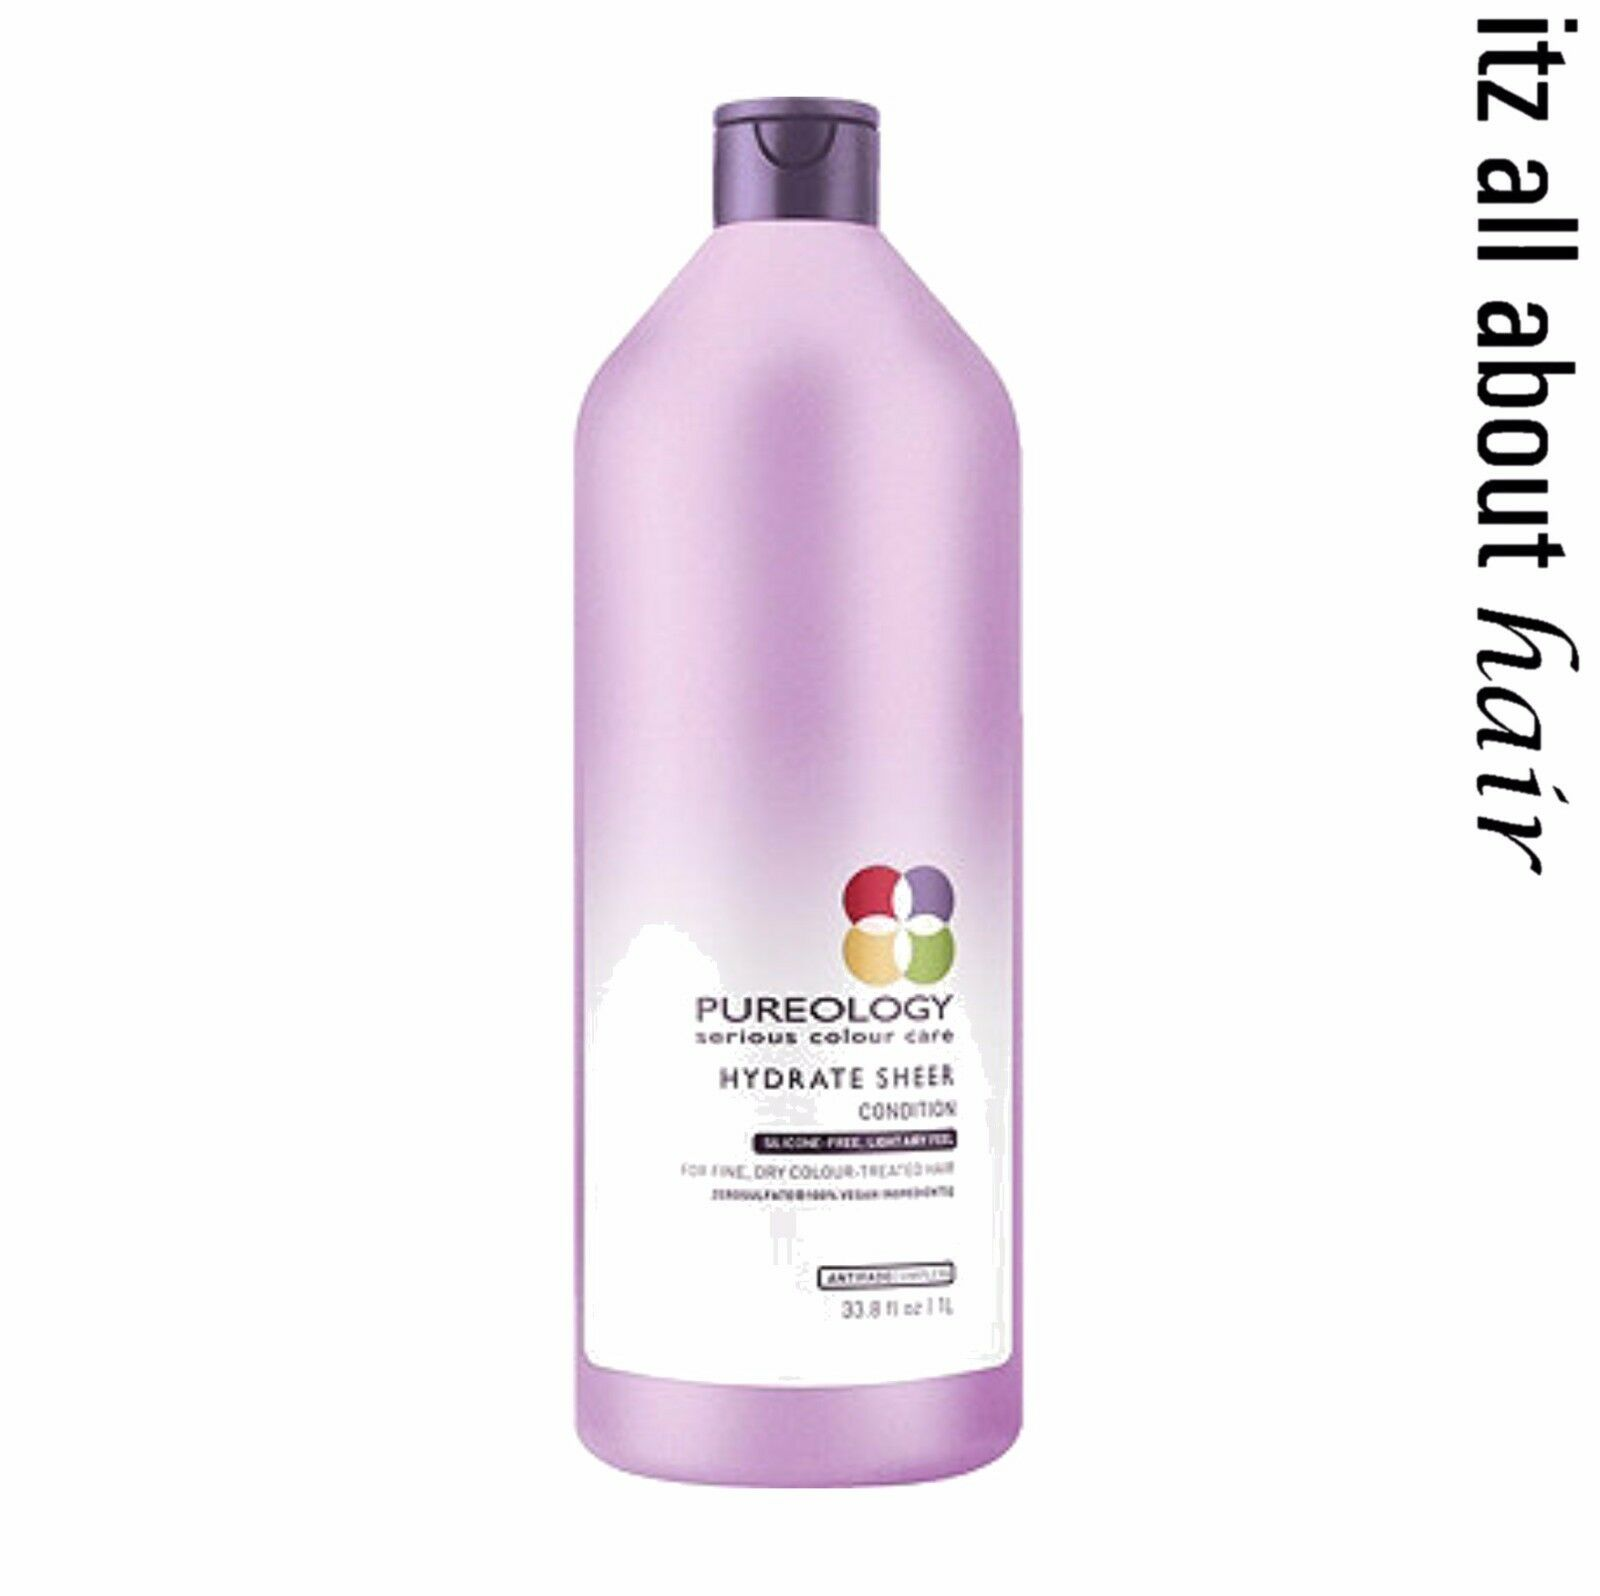 Pureology Hydrate Sheer Shampoo Conditioner 1000ml Duo